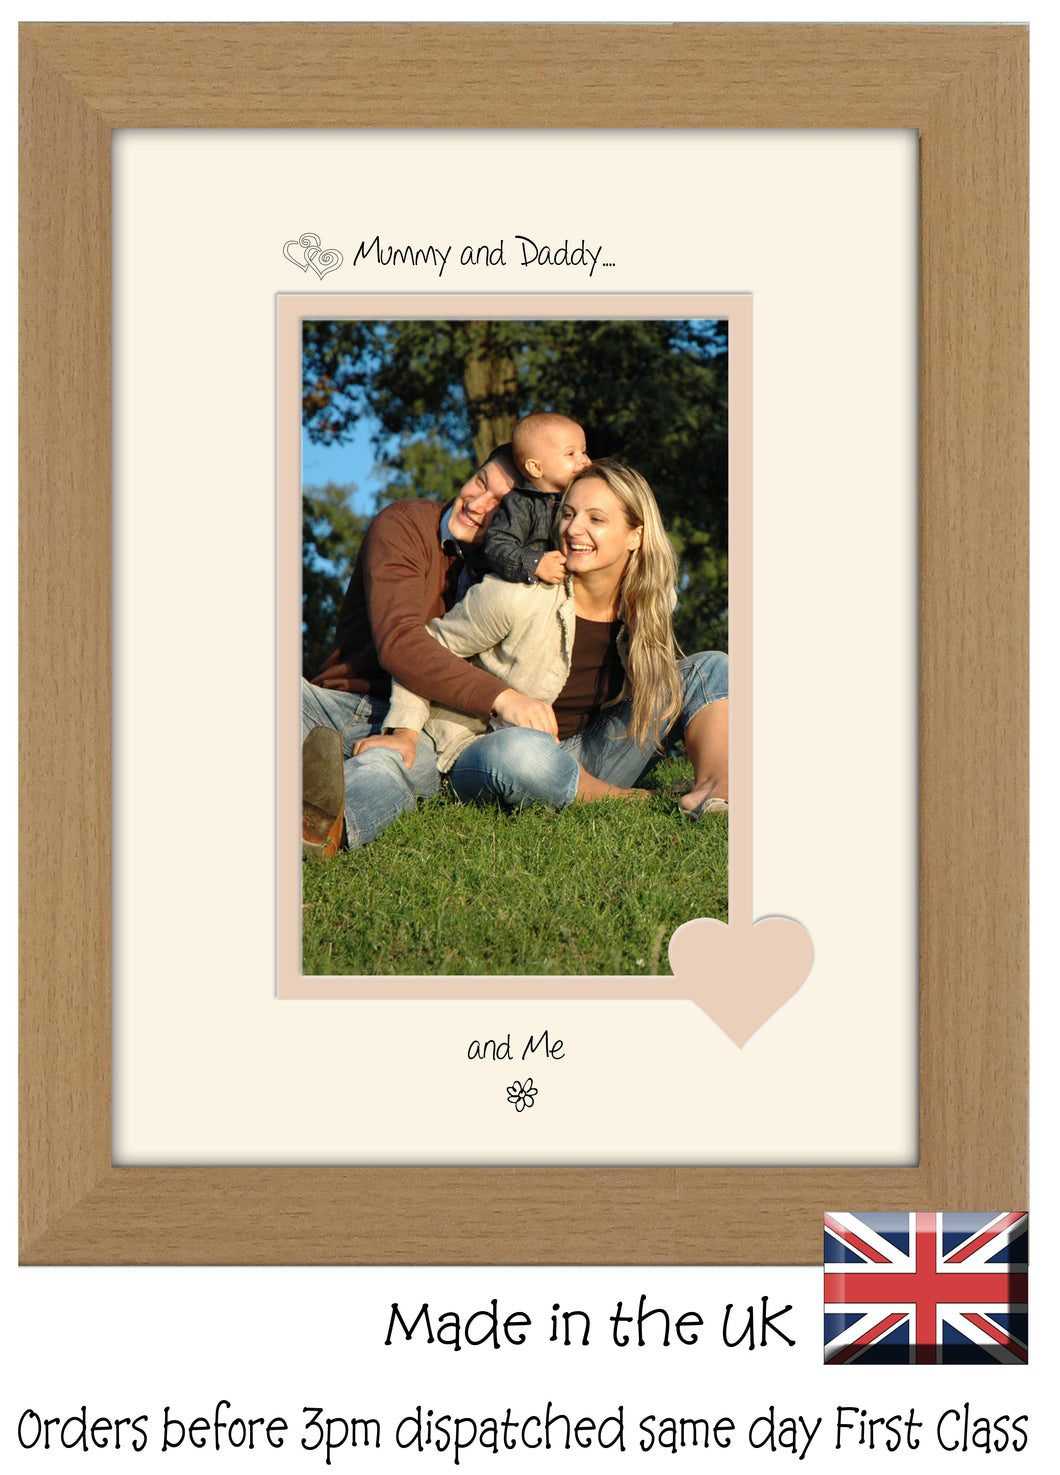 Mummy & Daddy Photo Frame - Mummy and Daddy… ...and me! Portrait photo frame 6